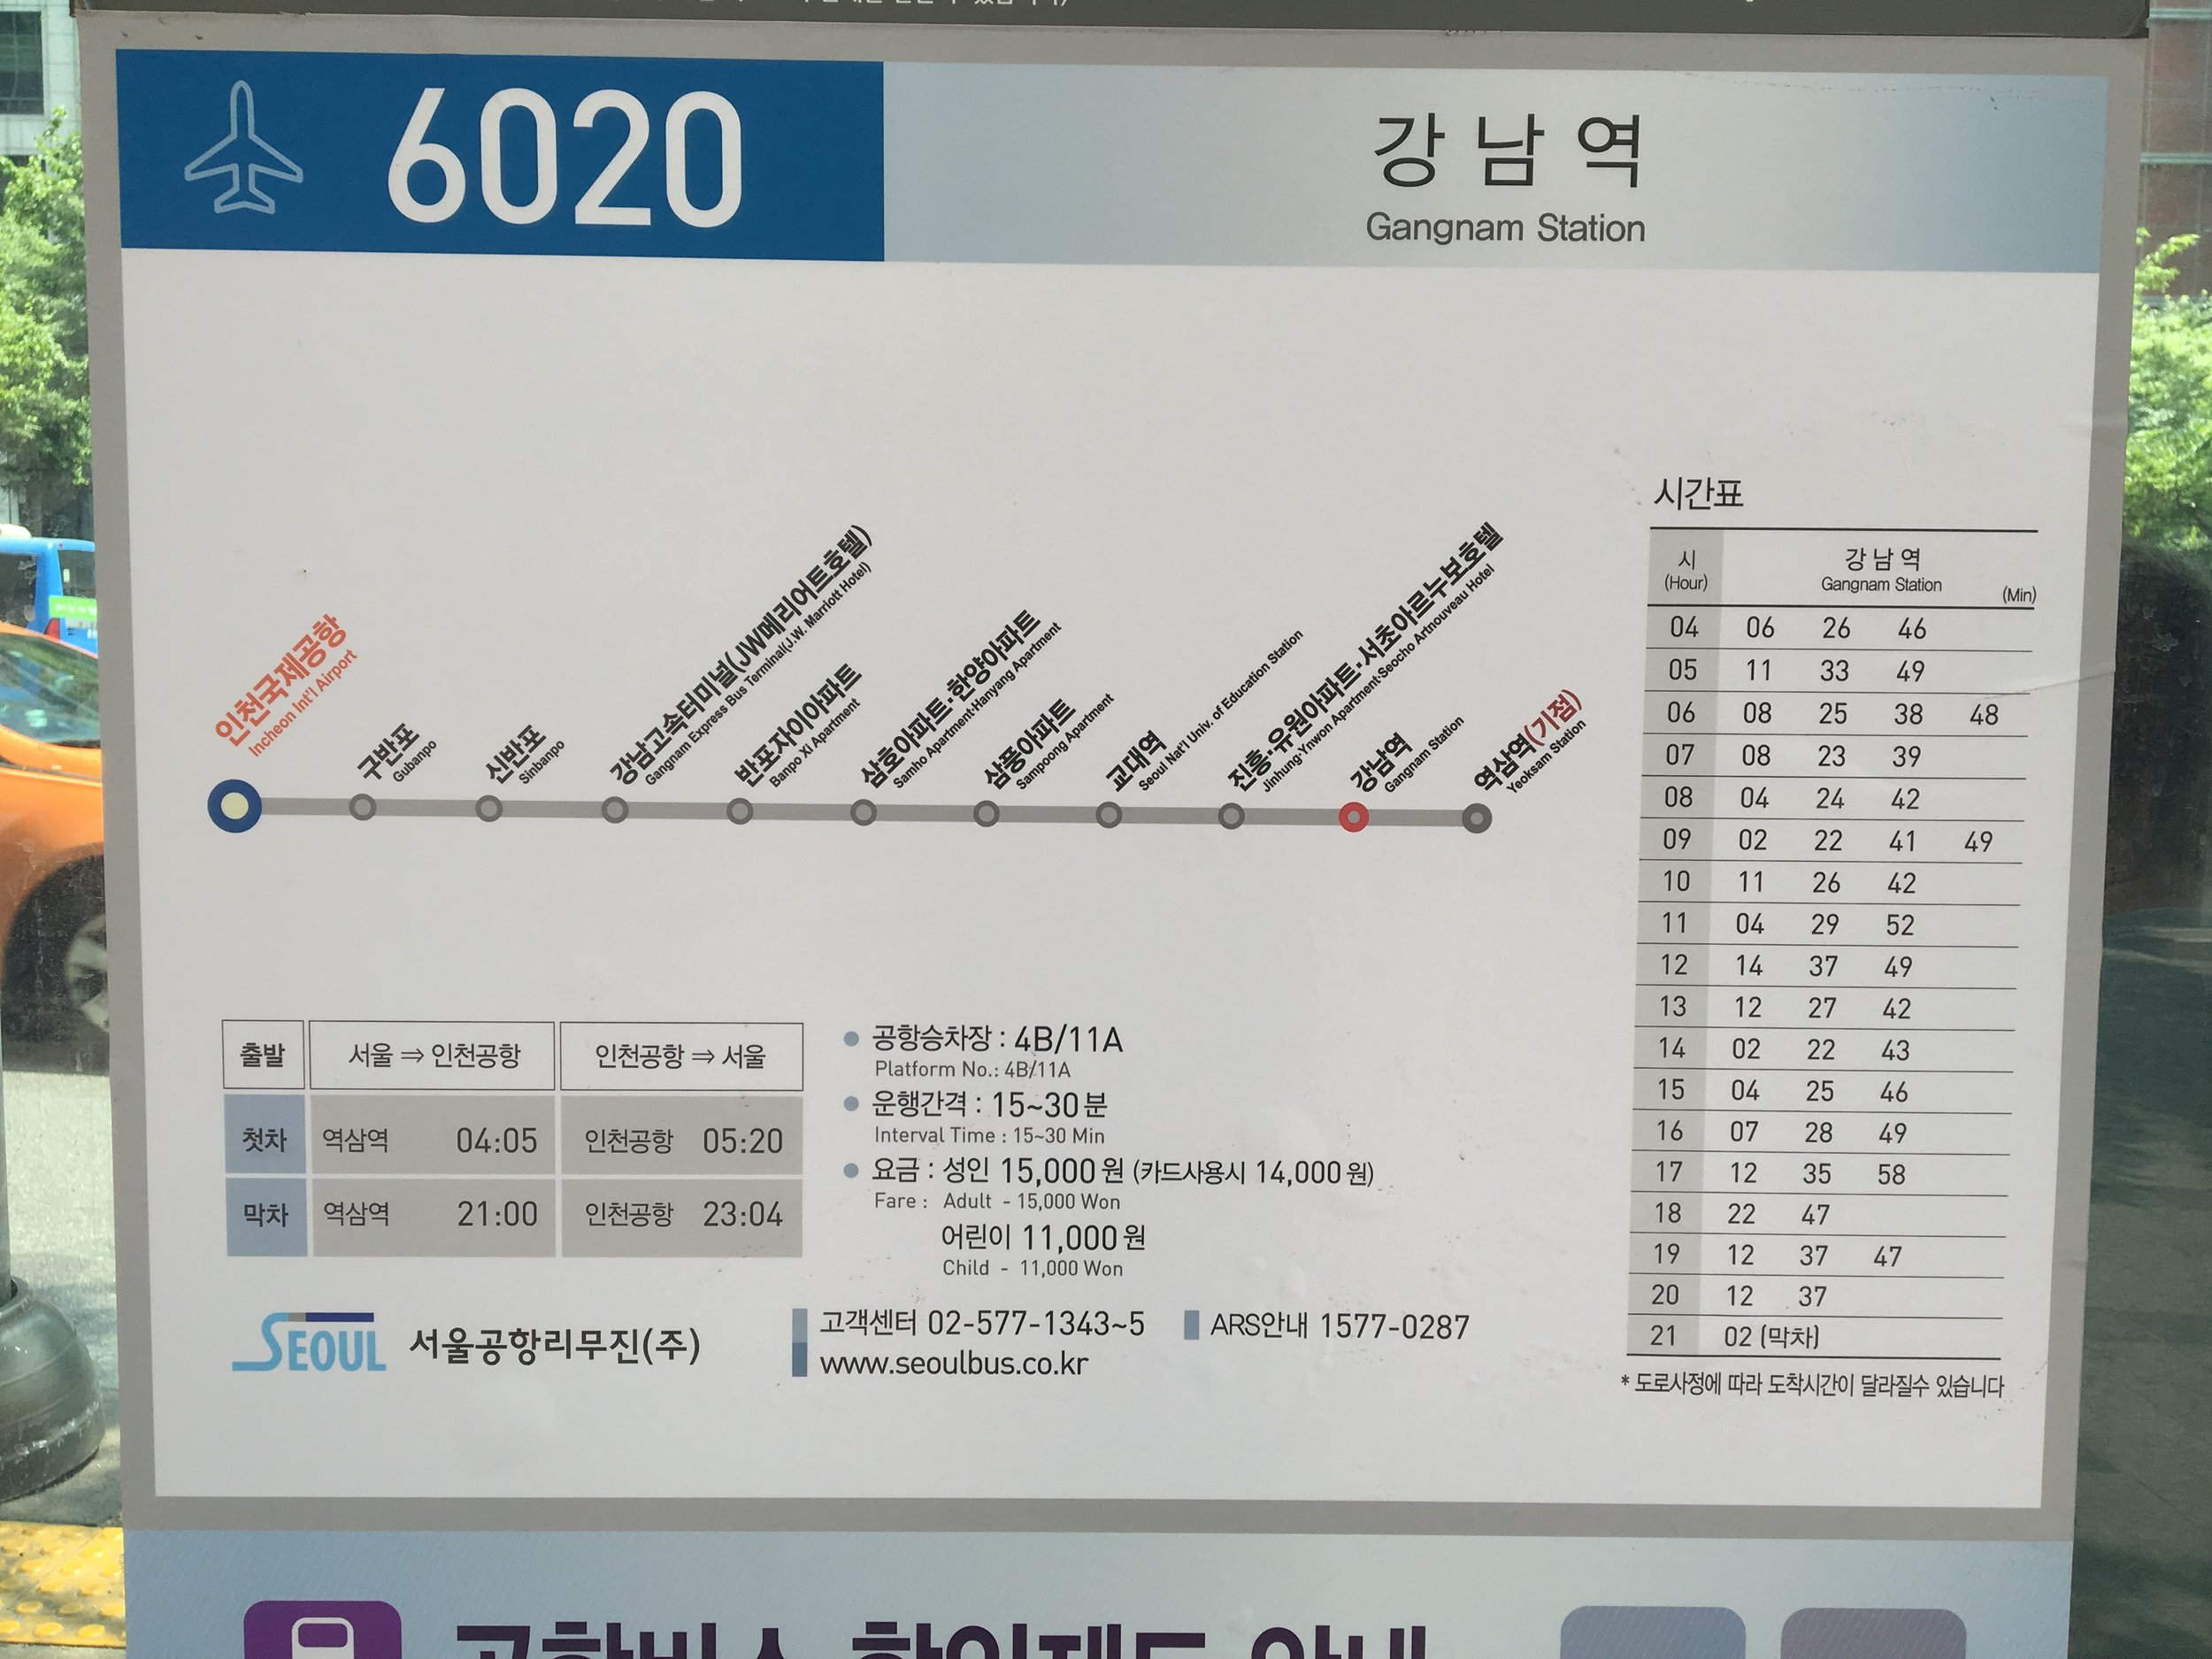 bus schedule - IT TAKES 90 MINS.EVERY 20-30MINS FROM 4:30AM TILL 9:00PM